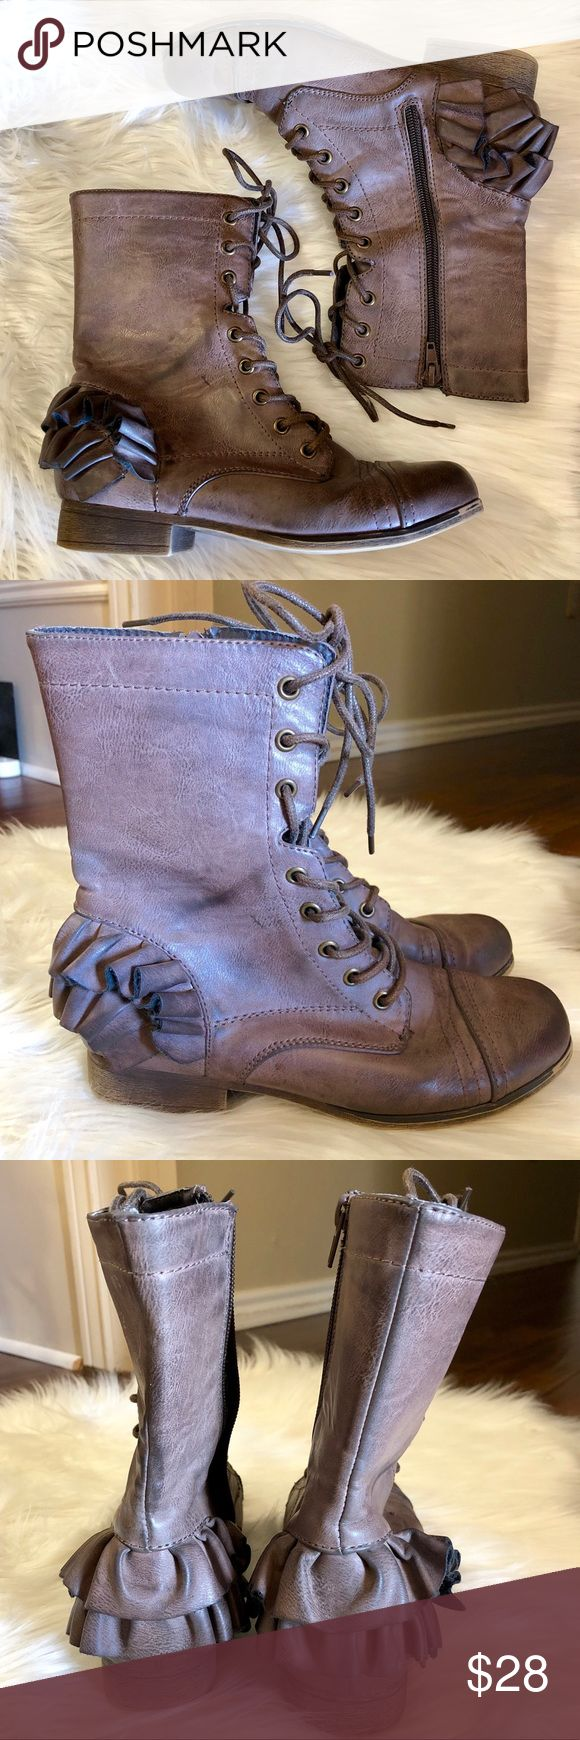 Betsey Johnson Ruffled Combat Boots Boho Size 7 Betsey Johnson Ruffle Trimmed Combat Boots   Size 7   Good pre-owned condition, a few minor imperfections including one small scratch on inward facing panel, pictured.   Distressed finish. These are a mocha color; they are brown with a greyish hue.   Thank you for looking! Betsey Johnson Shoes Combat & Moto Boots